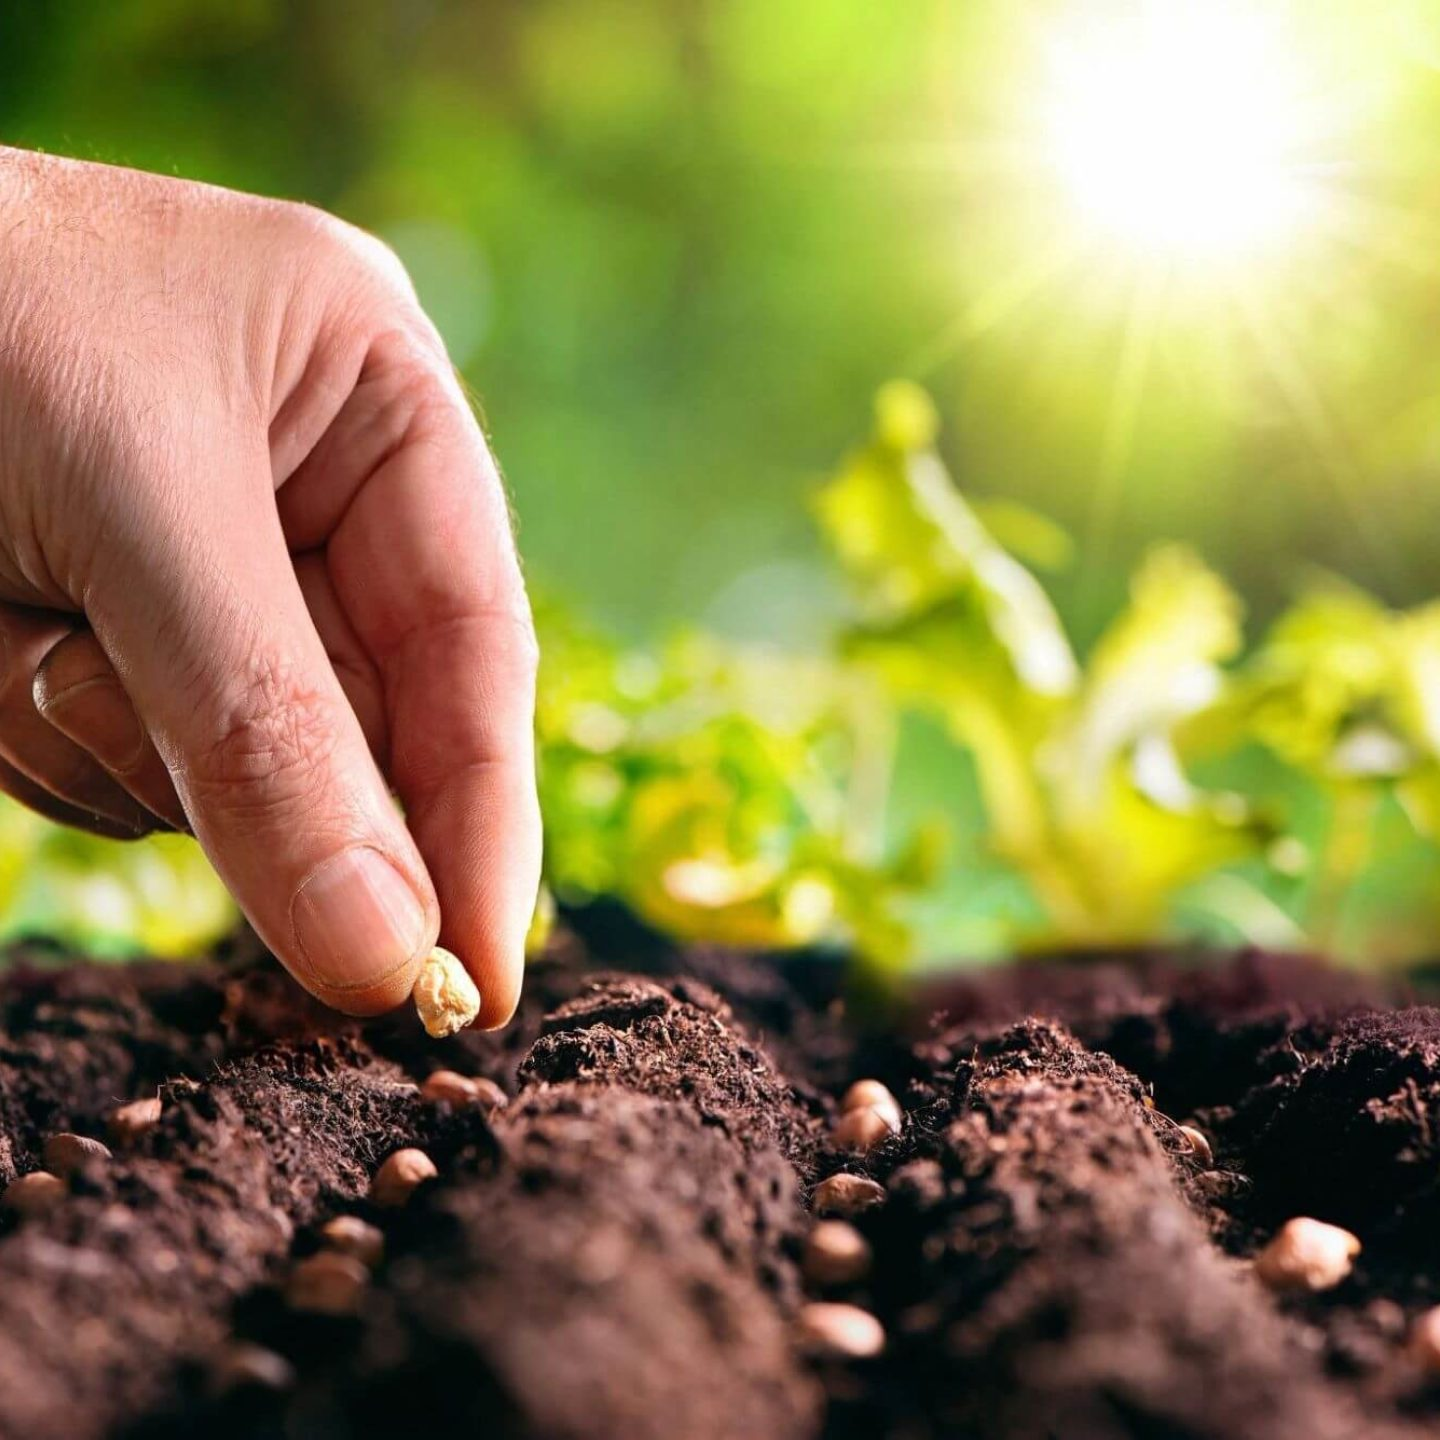 Person planting seed on earth - Everything You Need to Know About Starting a Vegetable Garden | NSF International